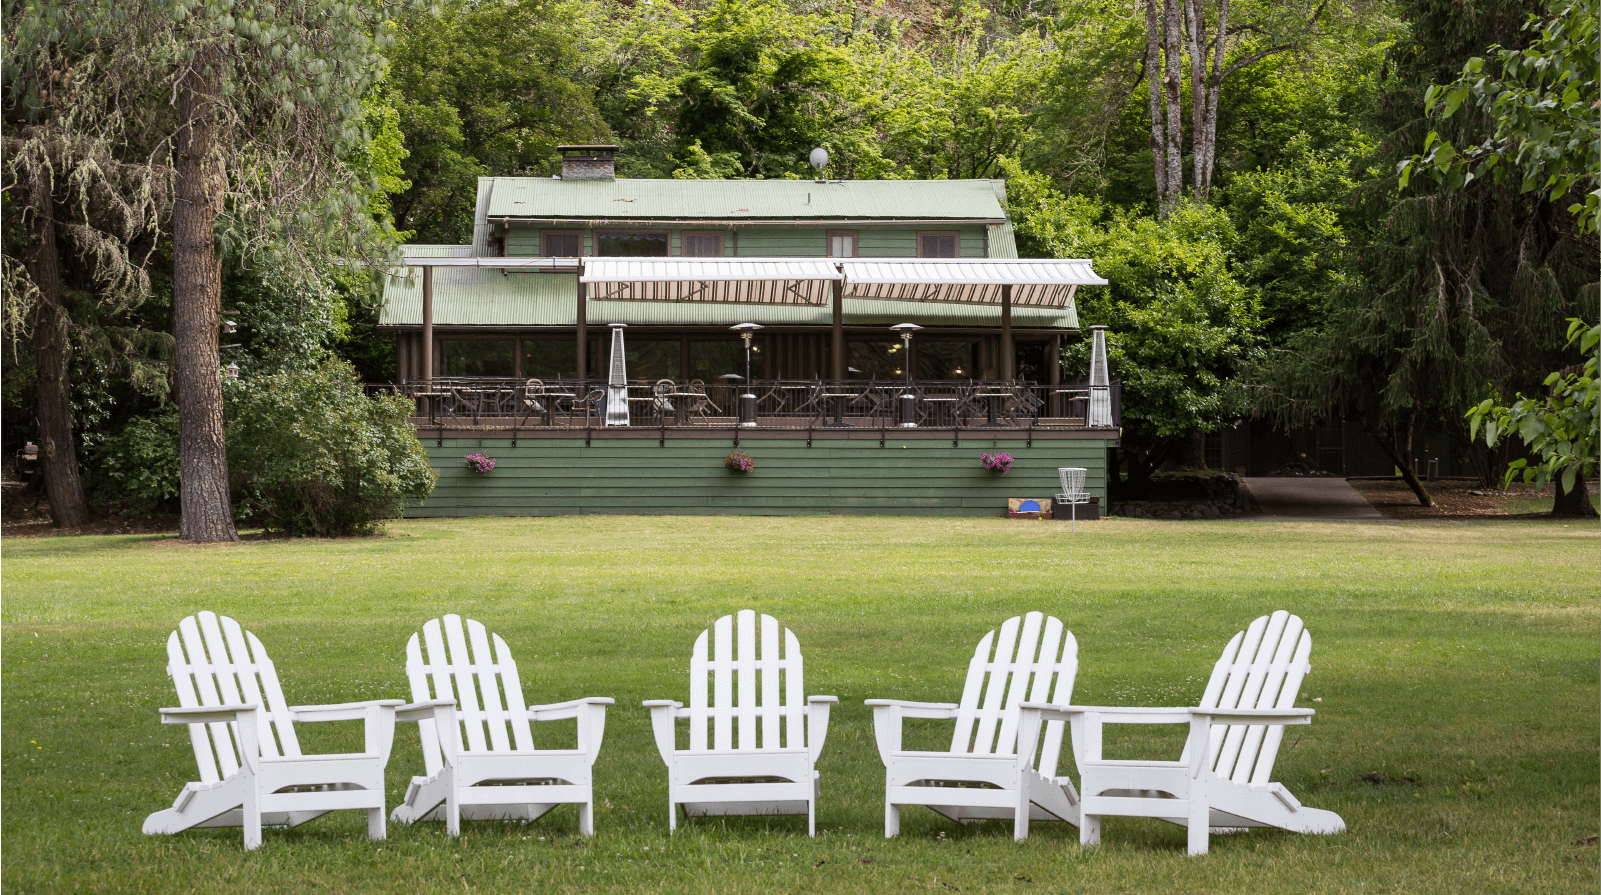 Morrisons Lodge overlooks a large green lawn with Adirondack chairs inviting guests to sit by the river.